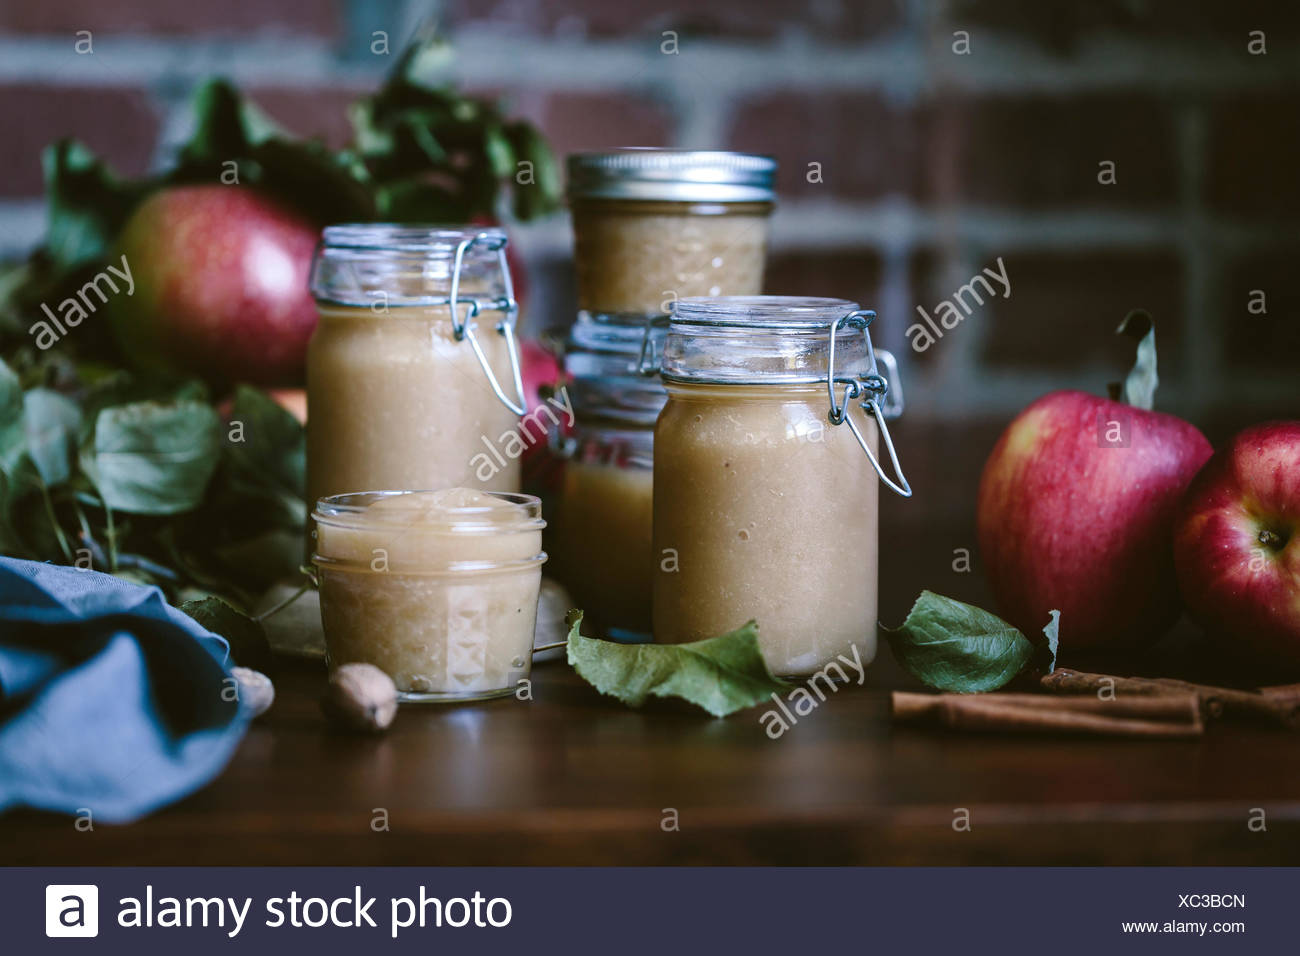 Glass jars filled with homemade slow cooker applesauce are photographed from the front view. - Stock Image